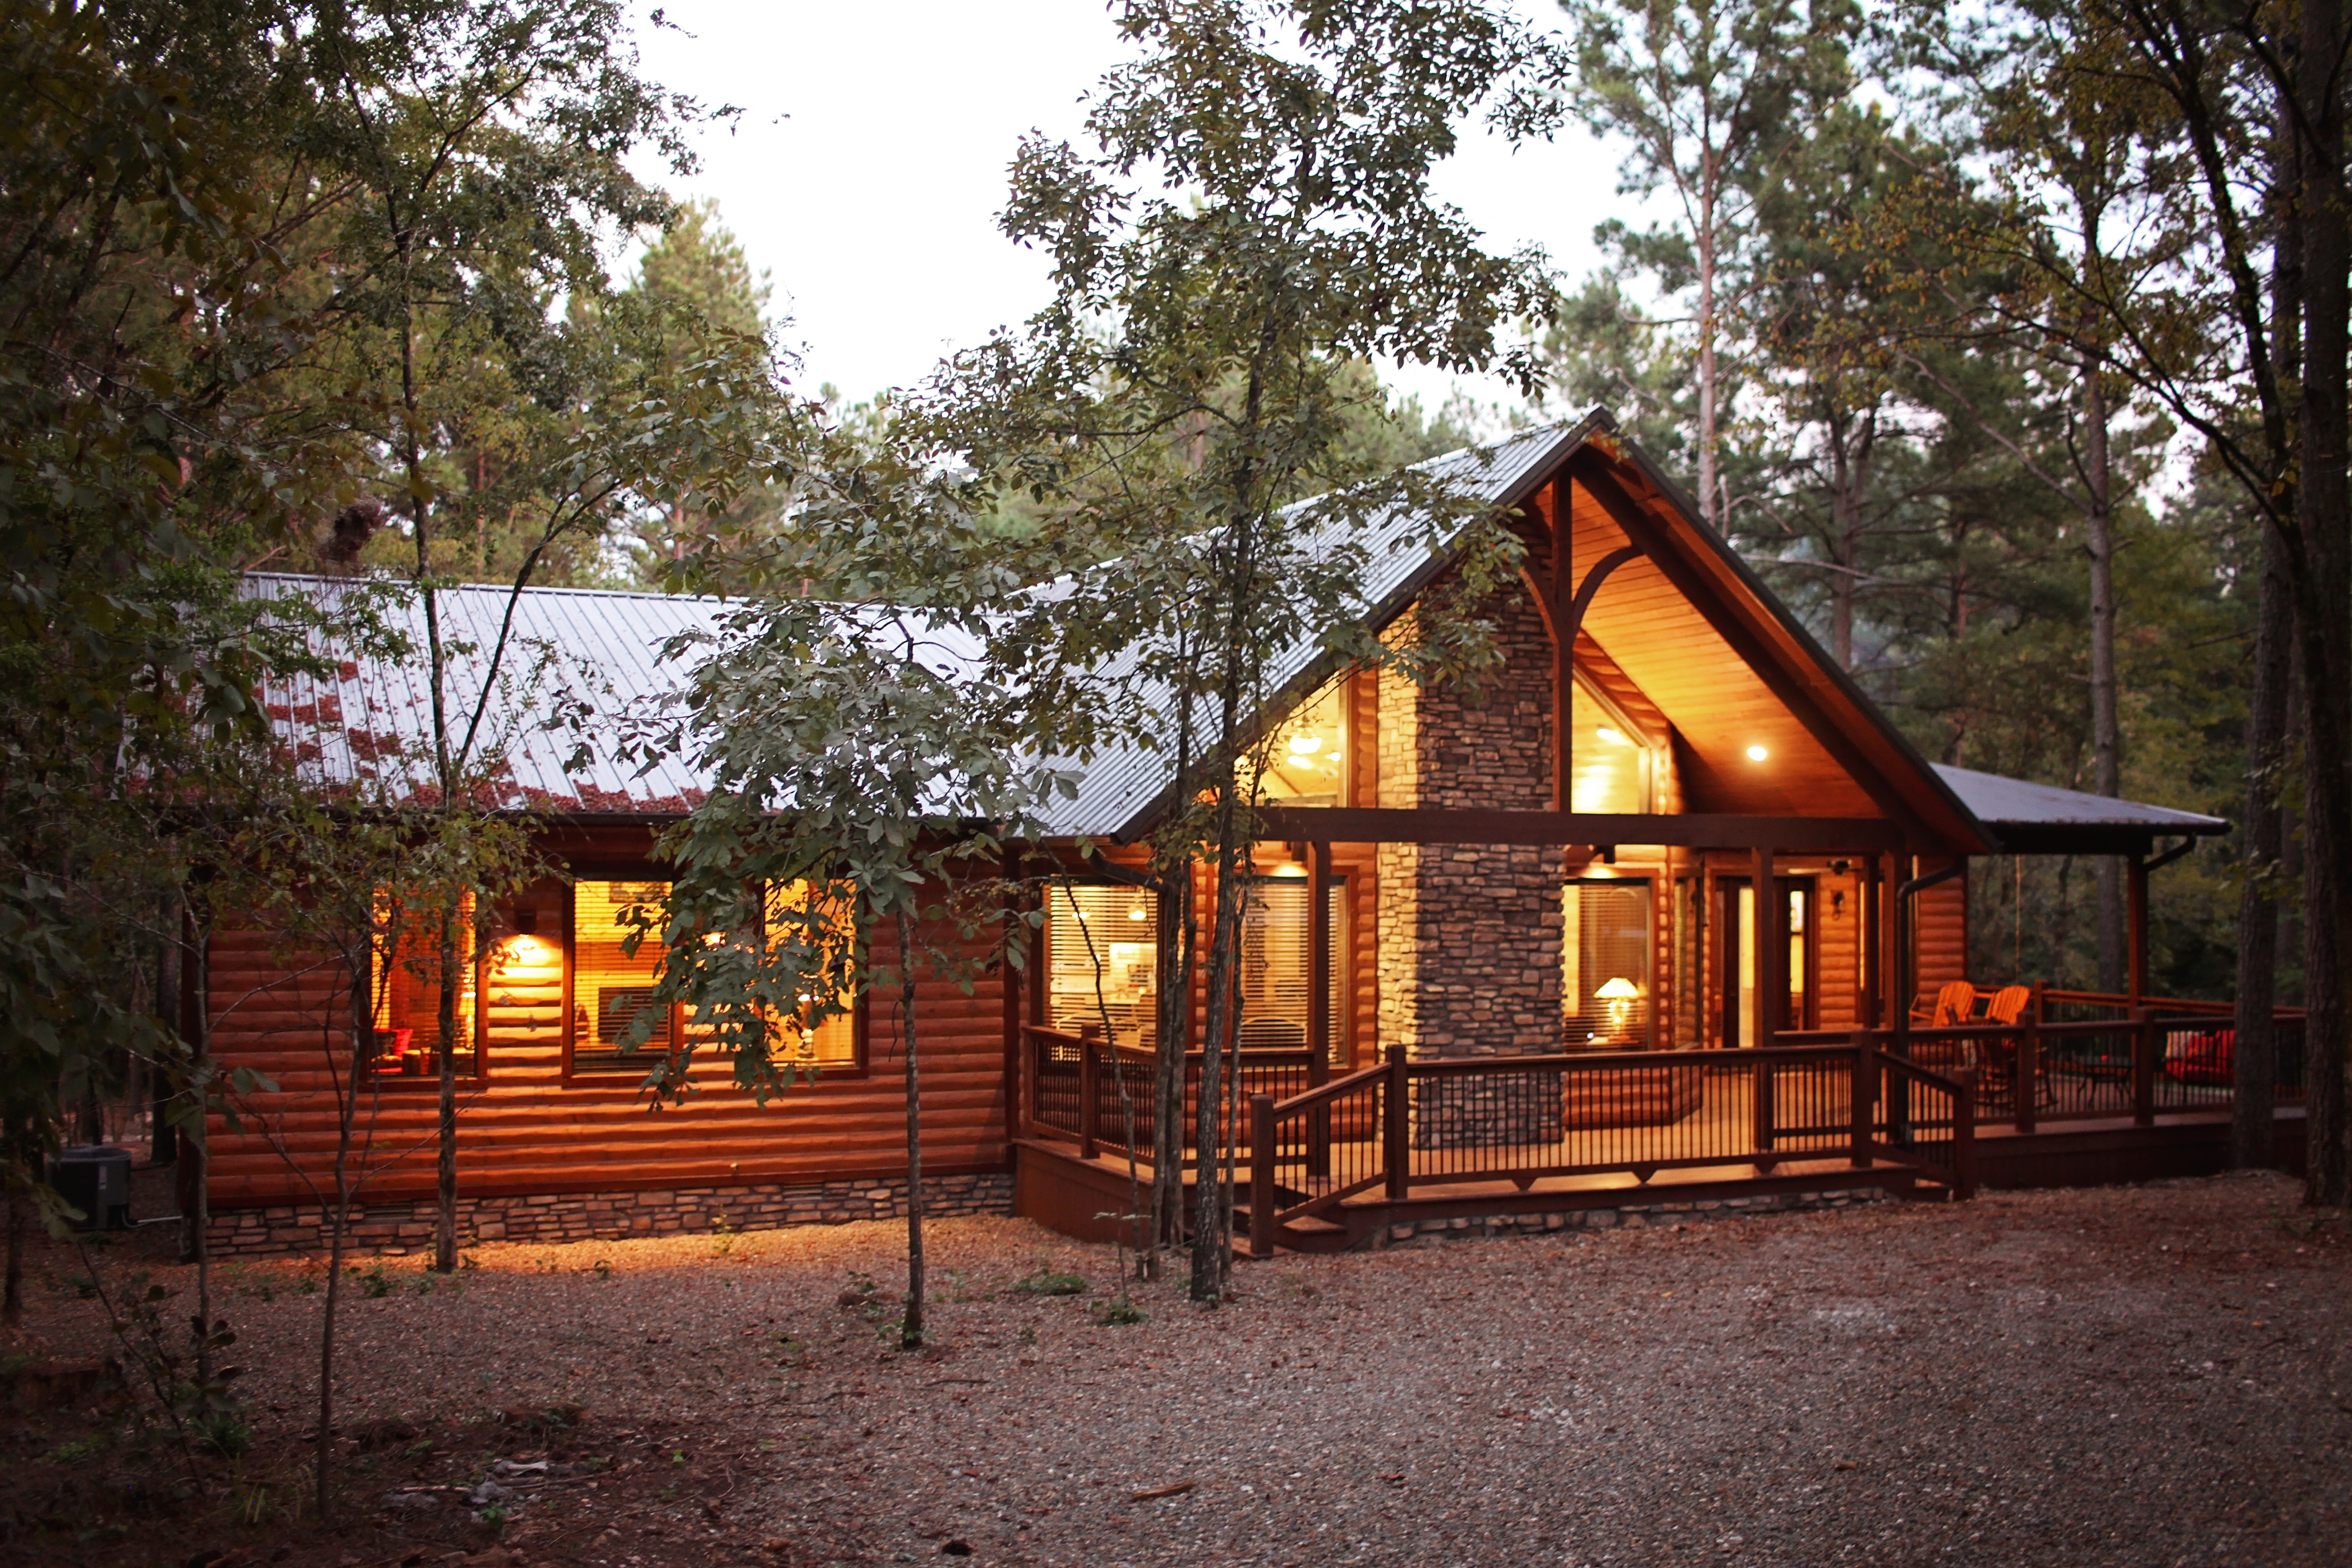 chicago cabins home stunning furniture getaways on with cabin design ideas near